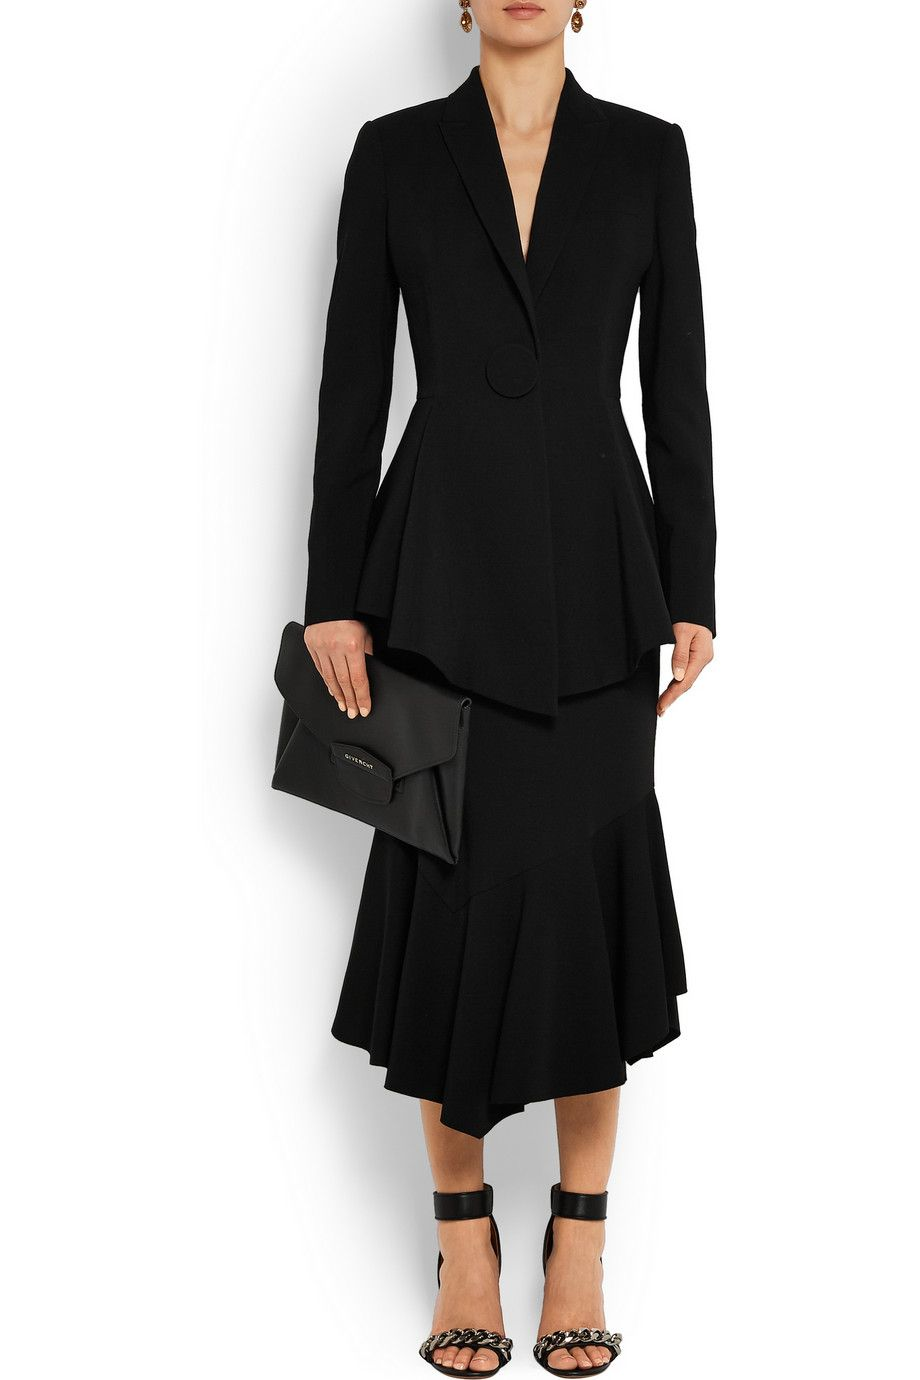 Givenchy | Peplum blazer in stretch-crepe & GIVENCHY Fluted midi skirt in black stretch-jersey | NET-A-PORTER.COM